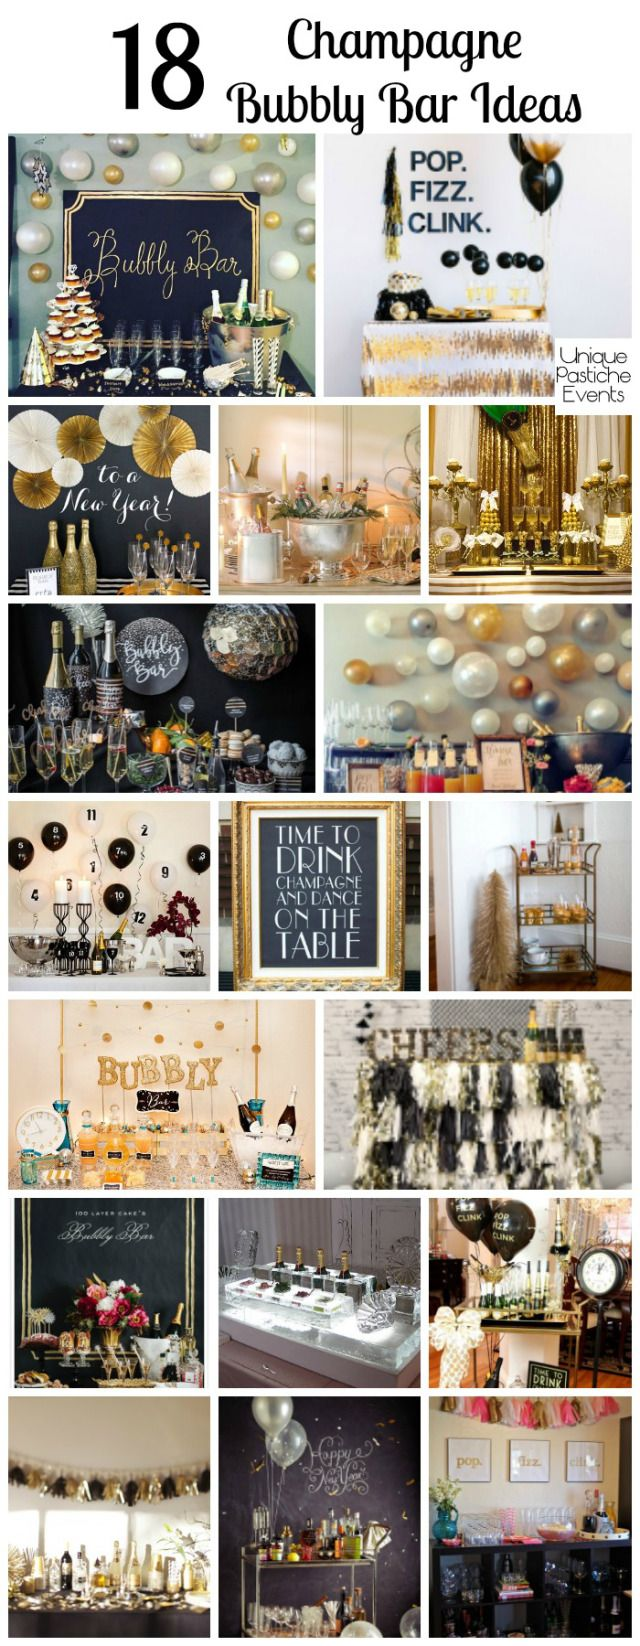 18 Champagne Bubbly Bar Ideas PERFECT For New Years